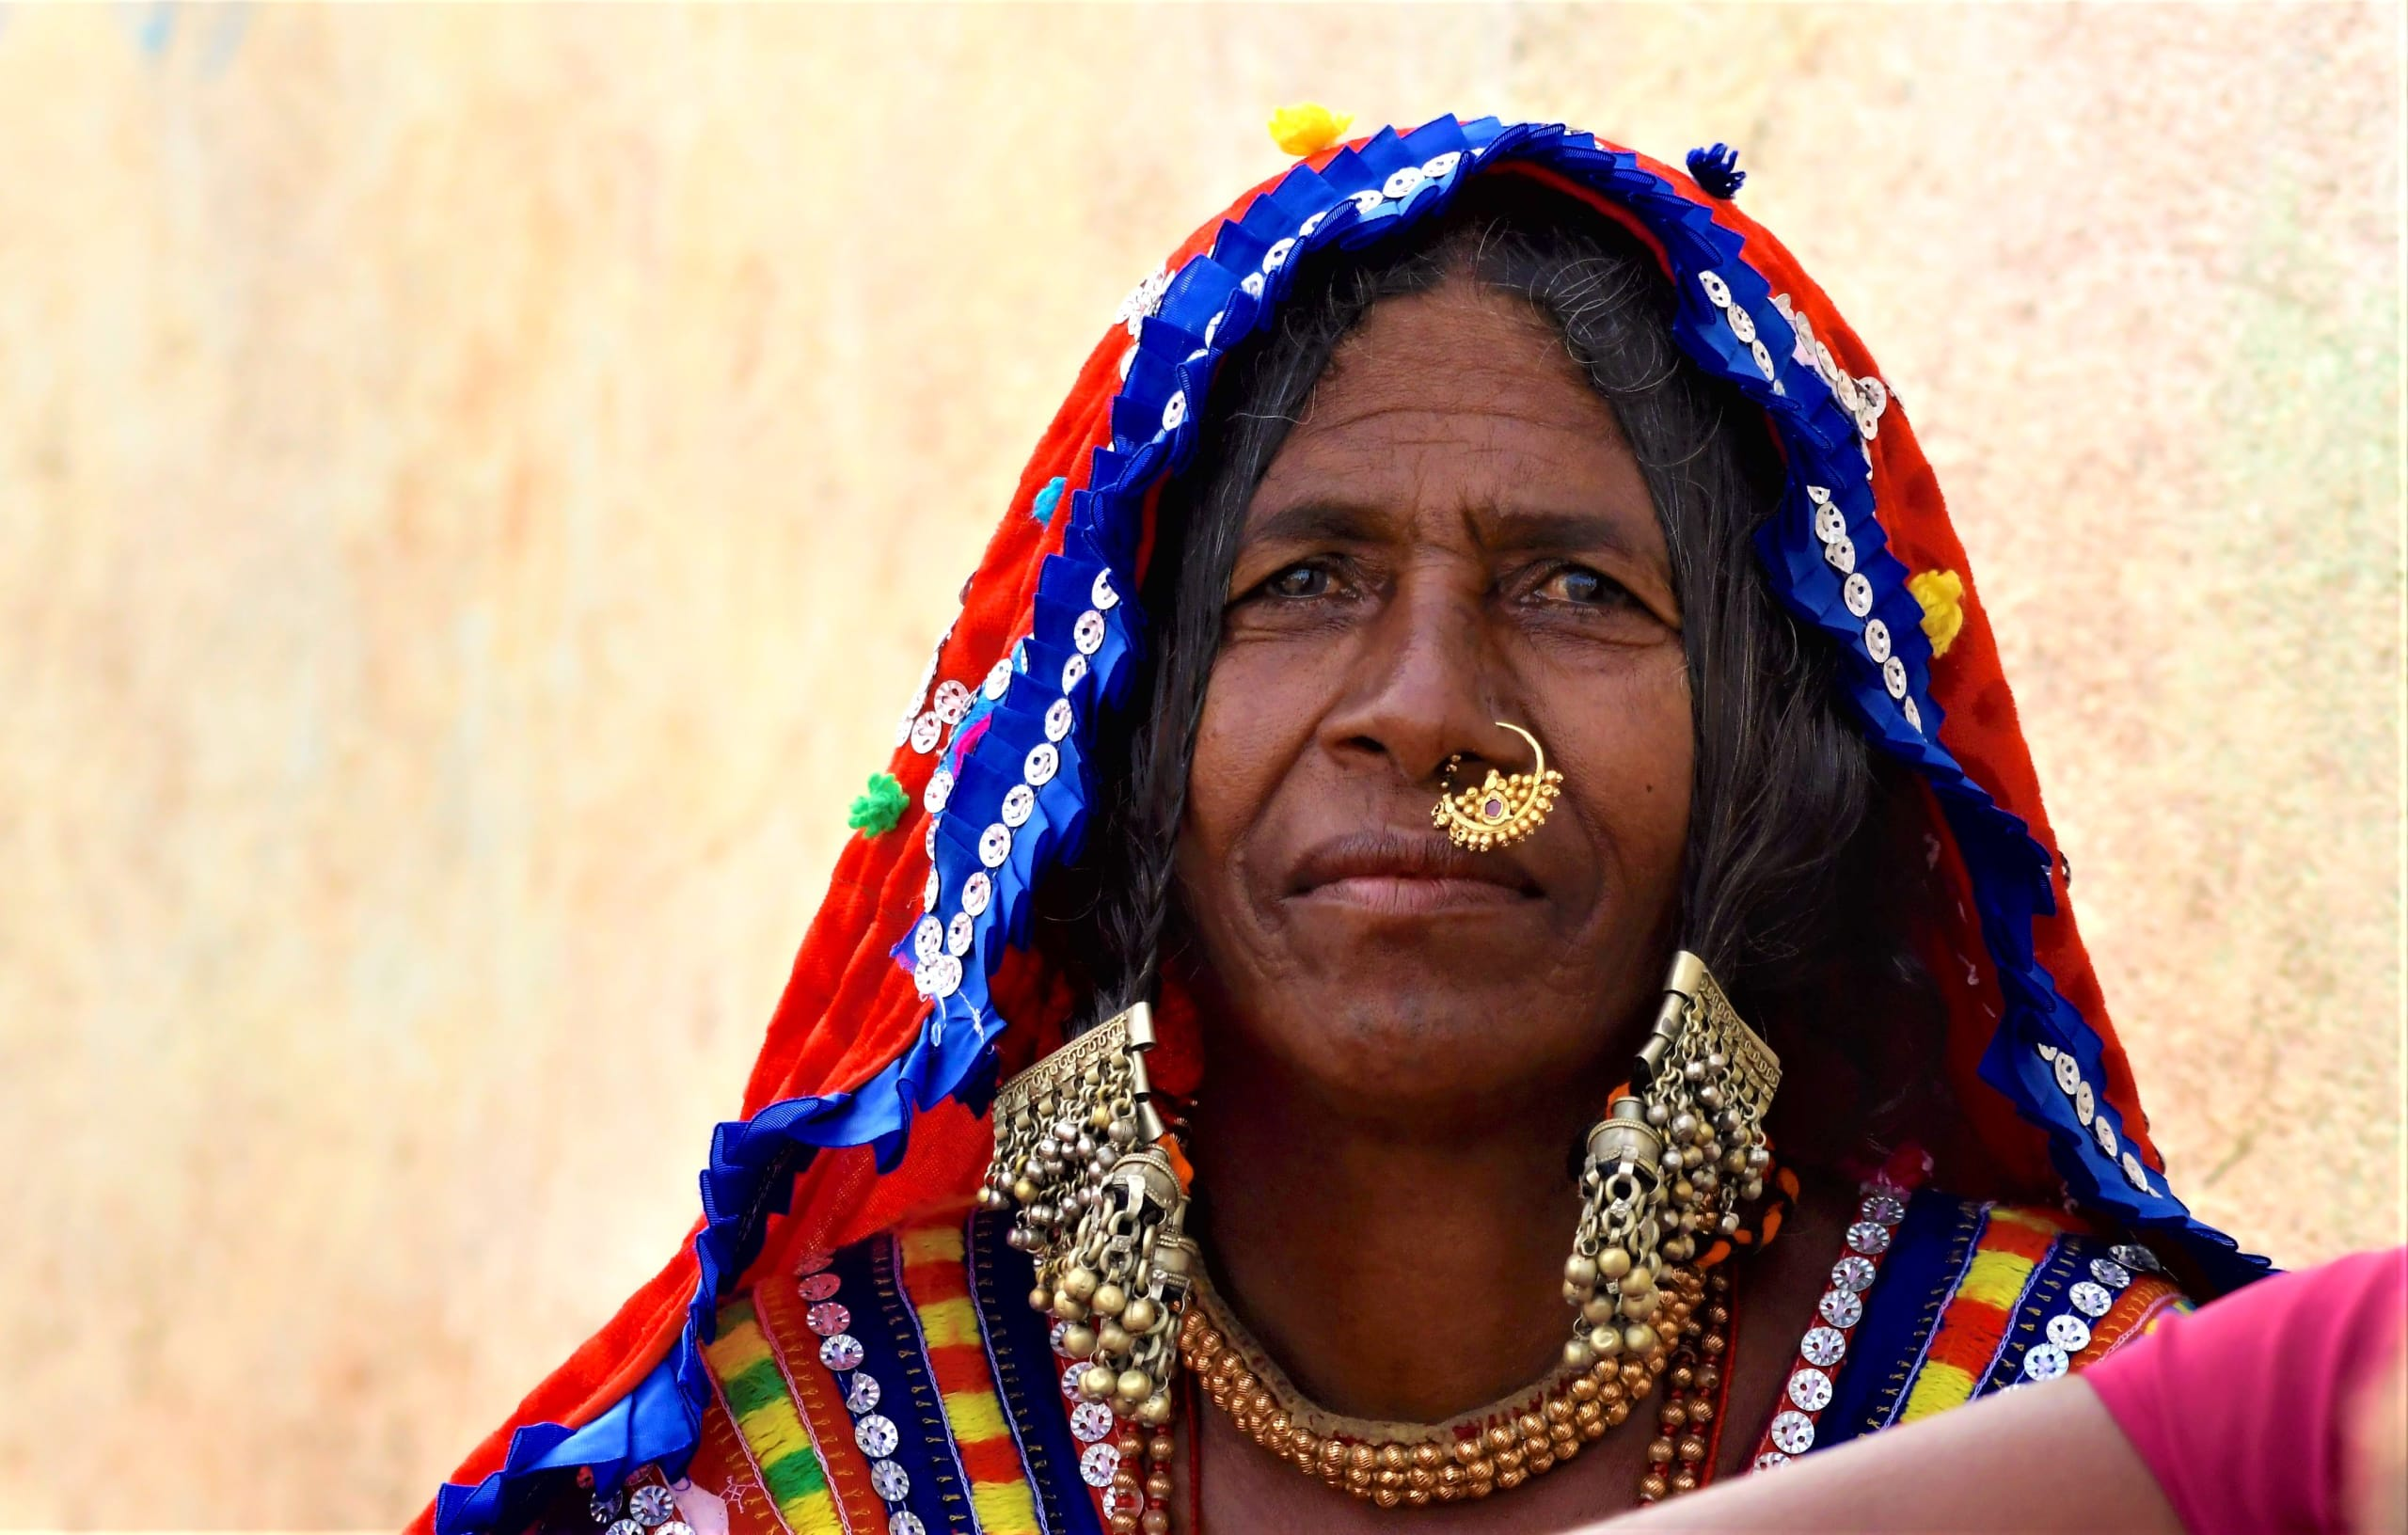 A traditional Lambadi woman from Koppal. The Lambadis or Banjaras were once nomadic tribes that are now semi-nomadic or settled, sharing space with other communities, industries, and wildlife.